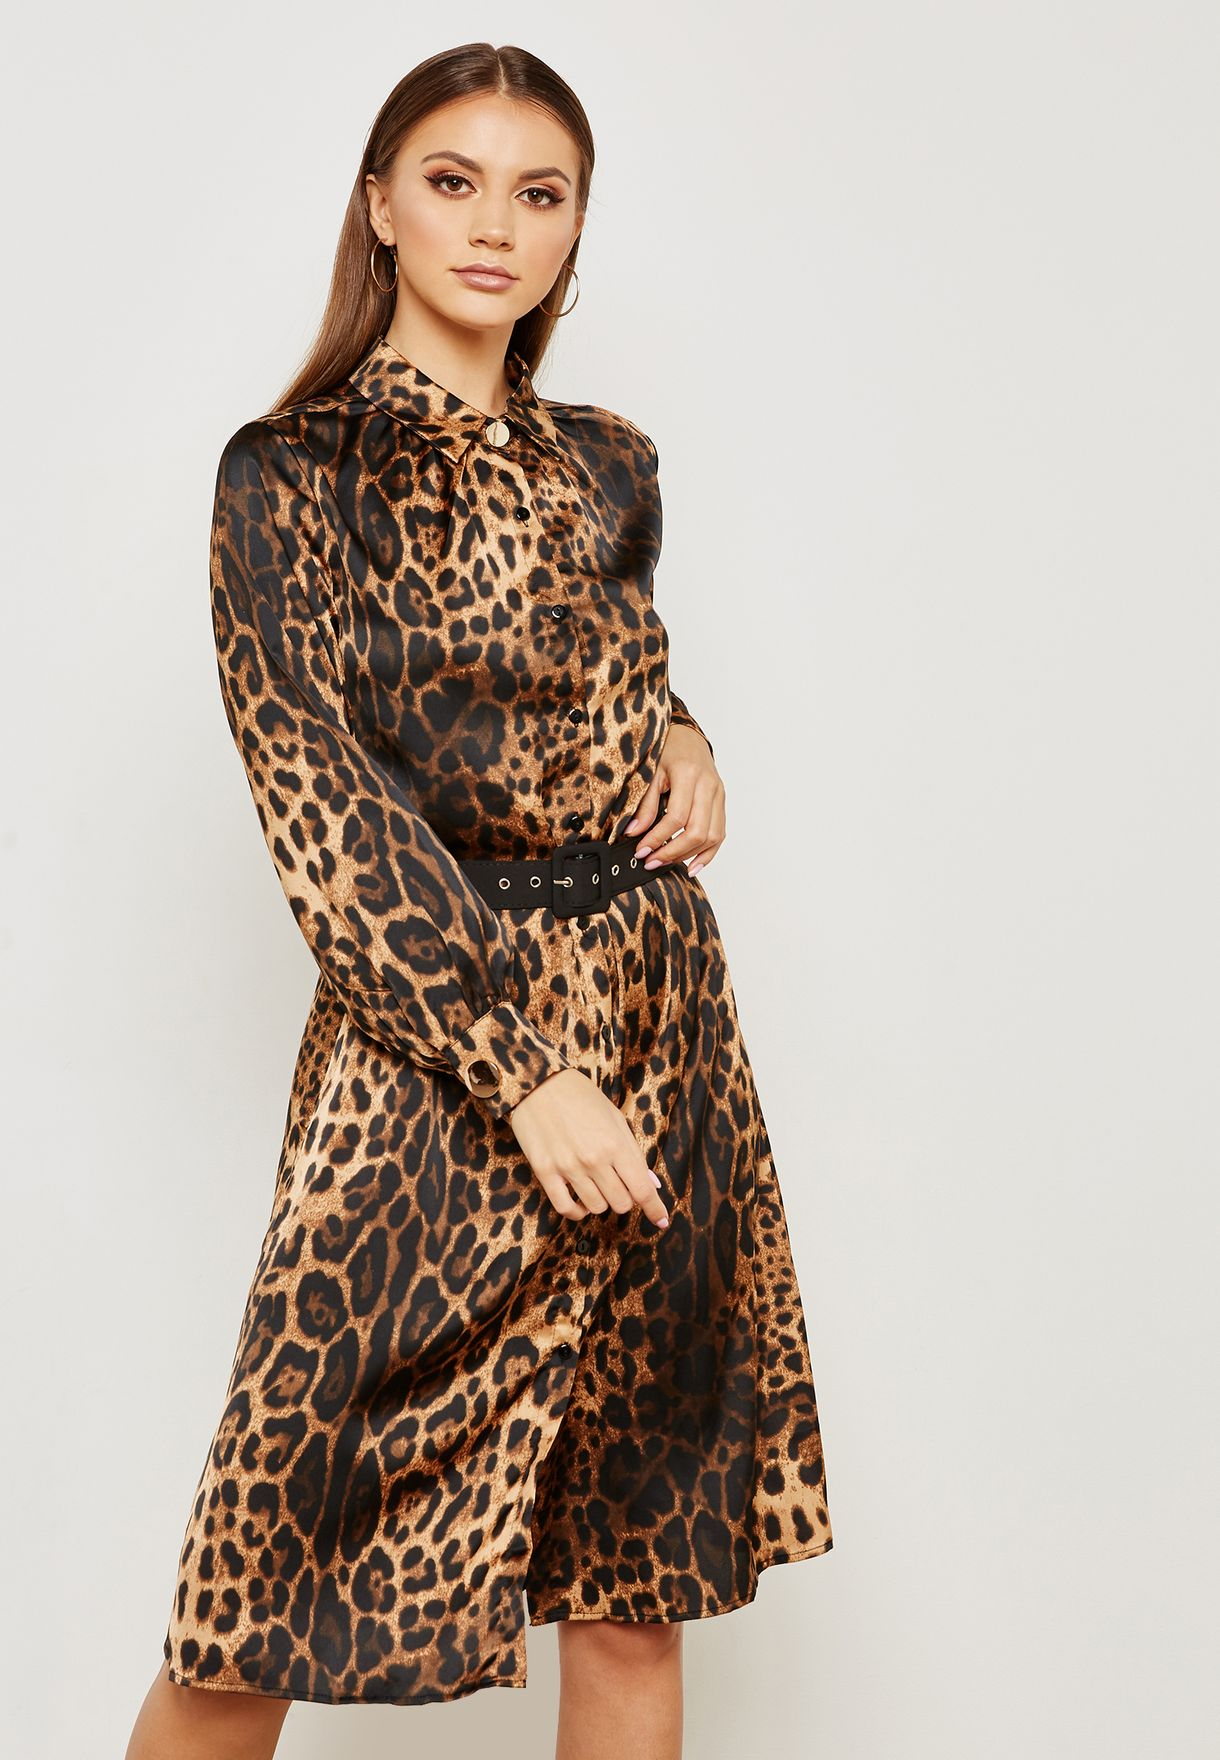 d775398948d Shop Ella prints Leopard Print Belted Shirt Dress 8010AC for Women ...